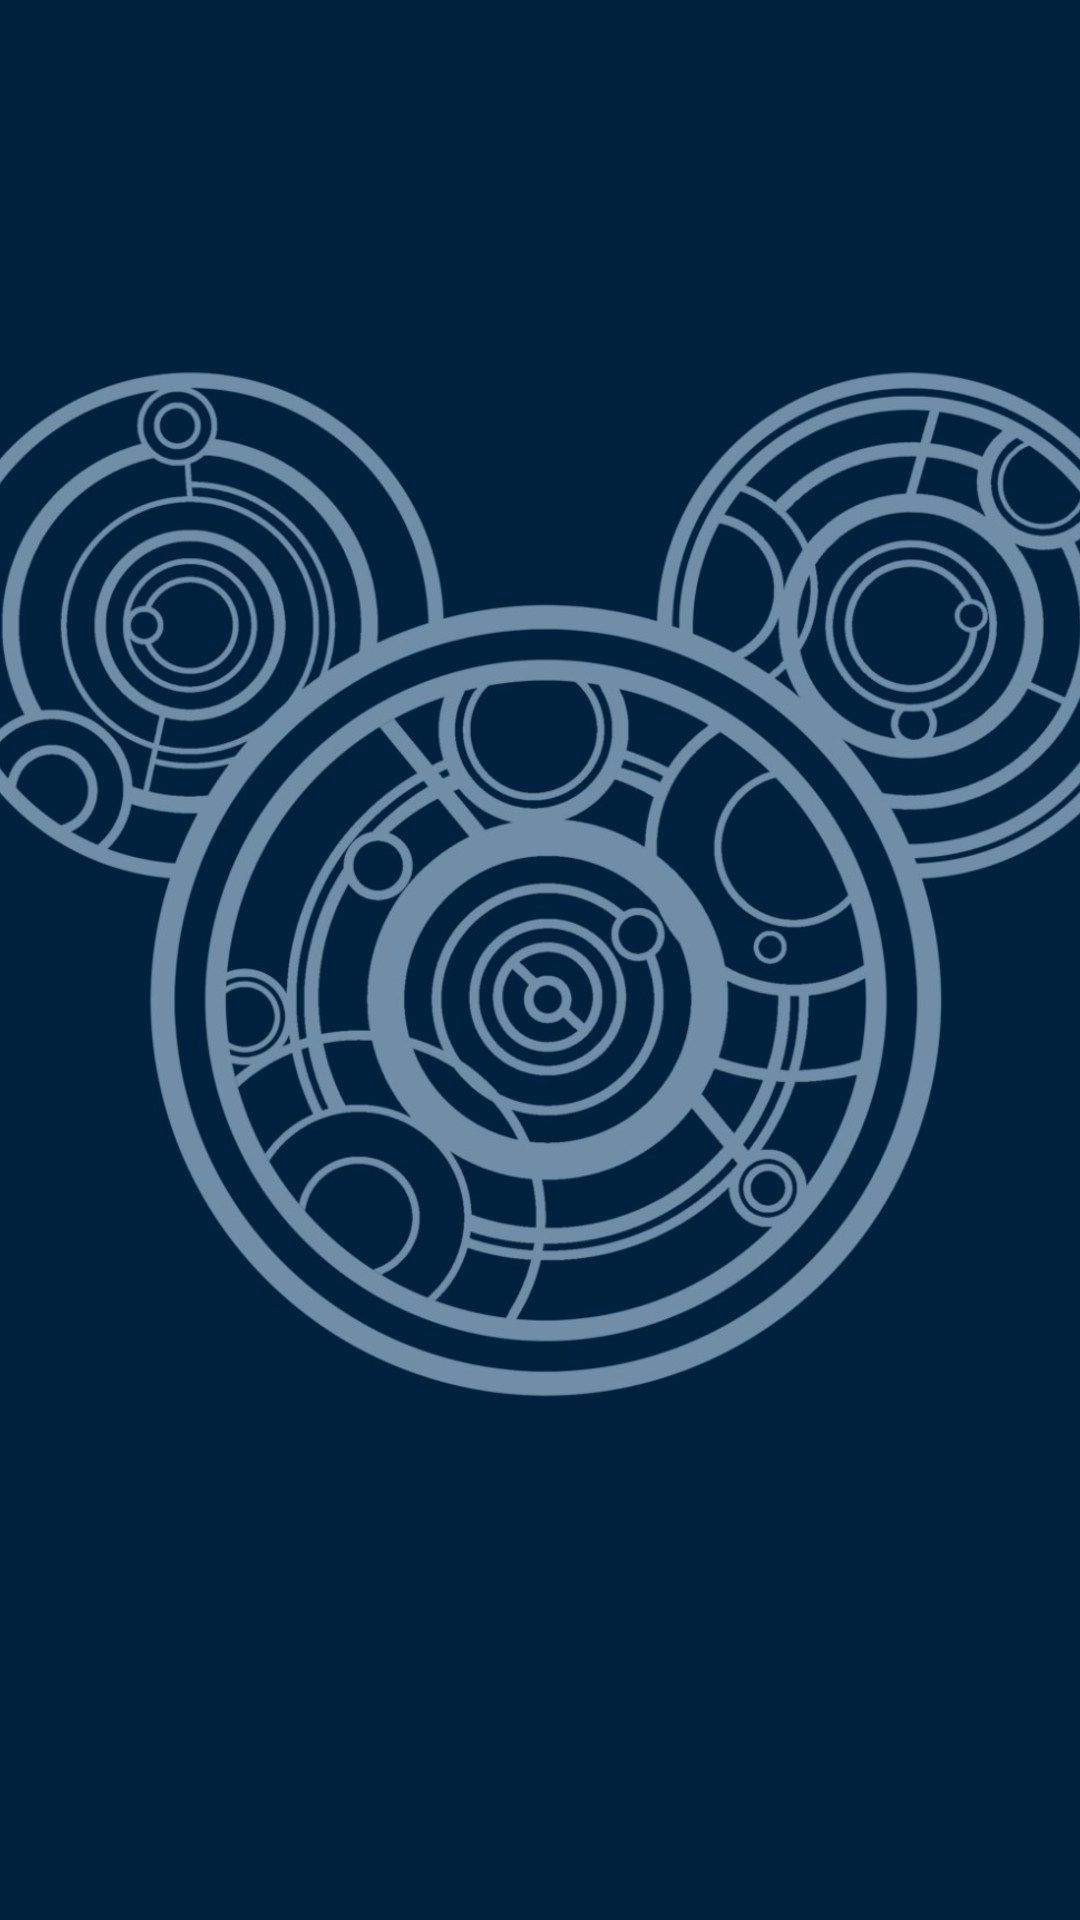 Mickey Mouse Minimalism Image Wallpaper 1080x1920 Iphone Homescreen Wallpaper Iphone Wallpaper Video Apple Wallpaper Iphone